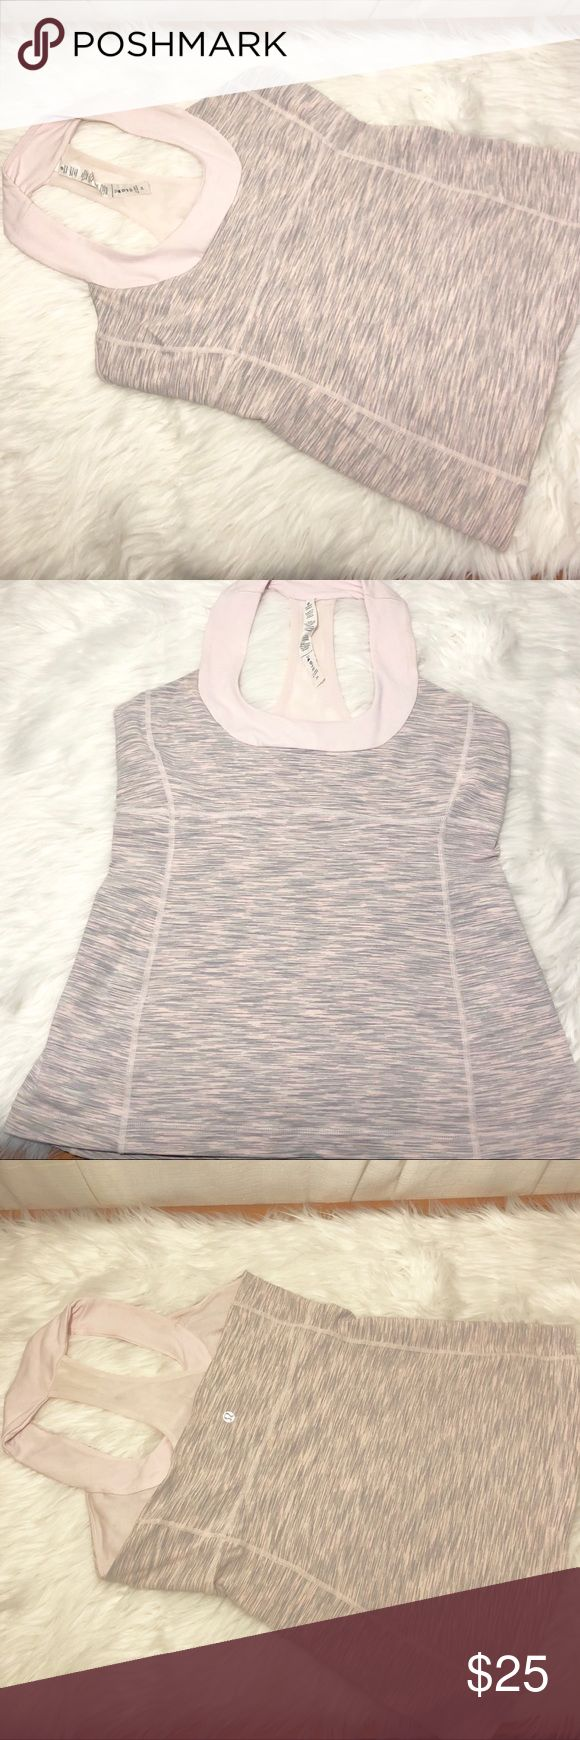 Lululemon scoop neck razorback tank Pink and grey scoop neck razorback tank top. Built in bra (no pads) great condition lululemon athletica Tops Tank Tops